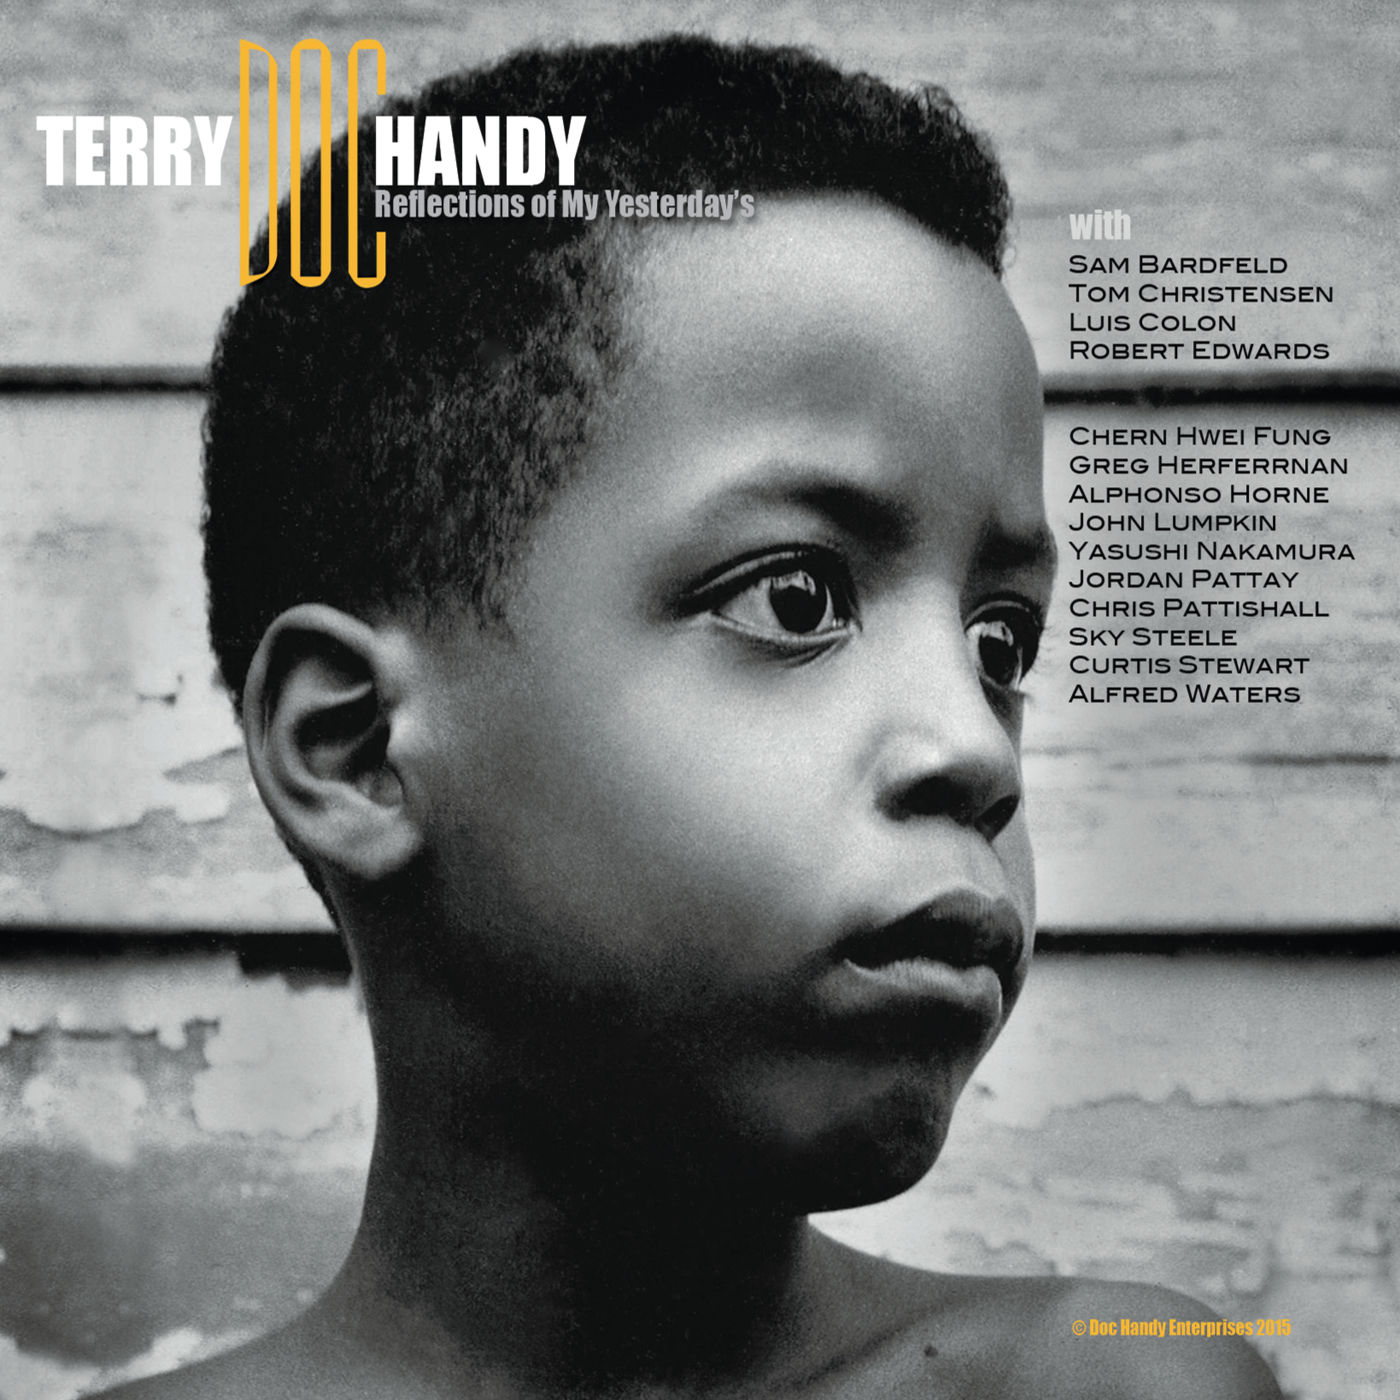 Terry Doc Handy